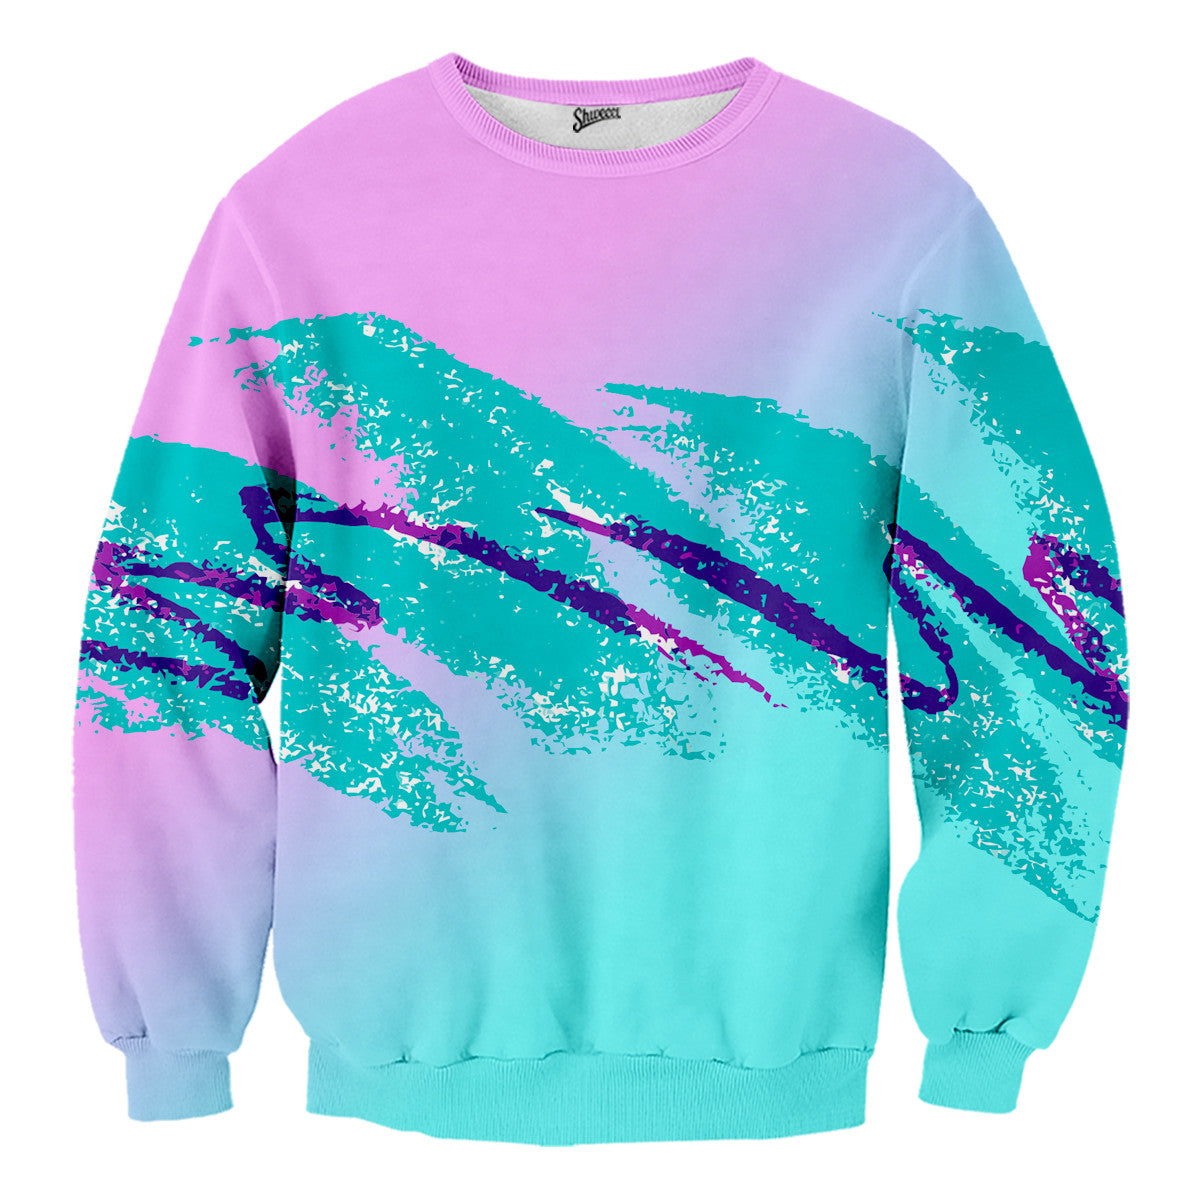 Jazz Paper Cup Sweater - Shweeet